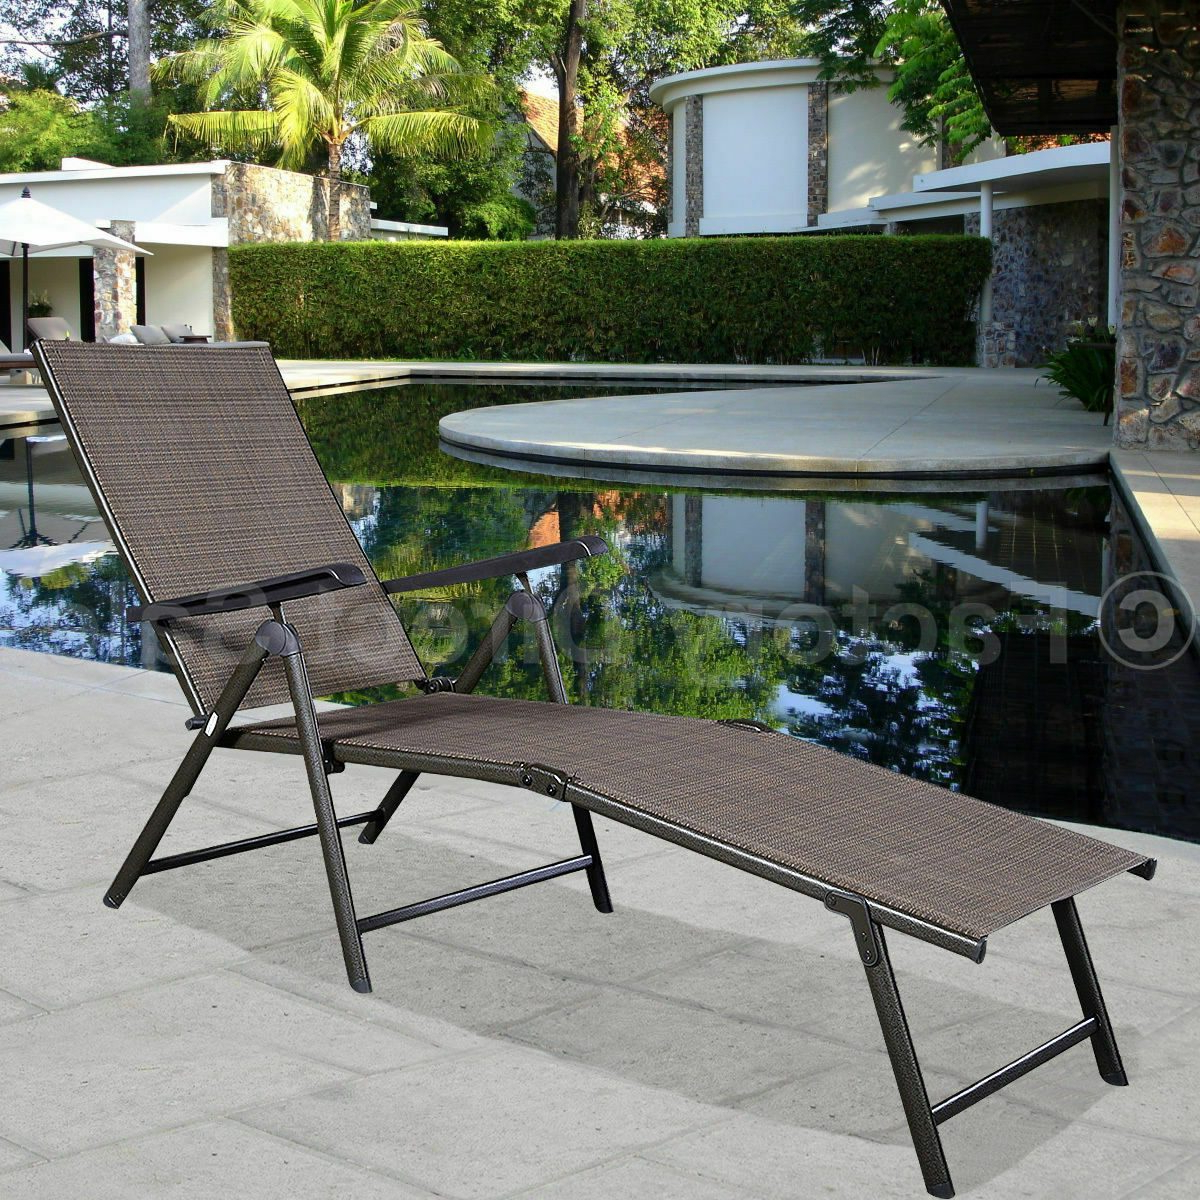 Outdoor Yard Pool Recliner Folding Lounge Table Chairs Throughout Most Current Citycw Adjustable Pool Chaise Lounge Chair Recliner Textilene Outdoor Patio Furniture (Gallery 17 of 25)